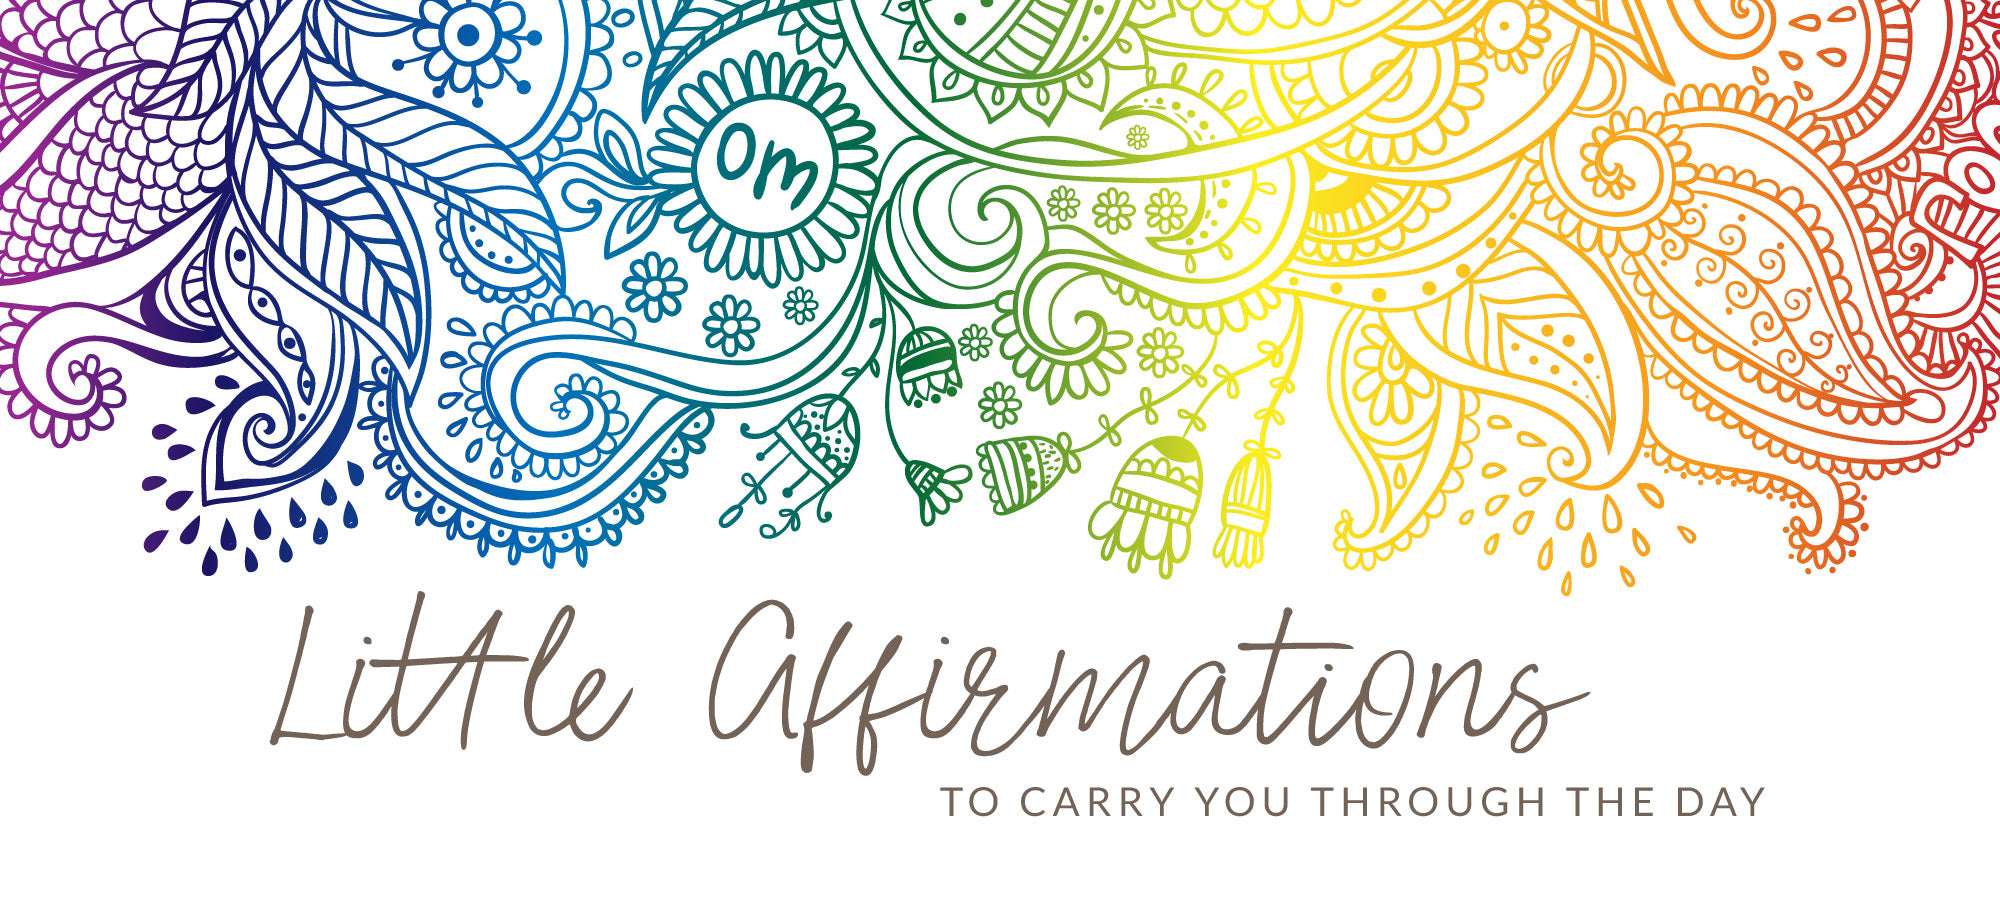 Little Affirmations Collection